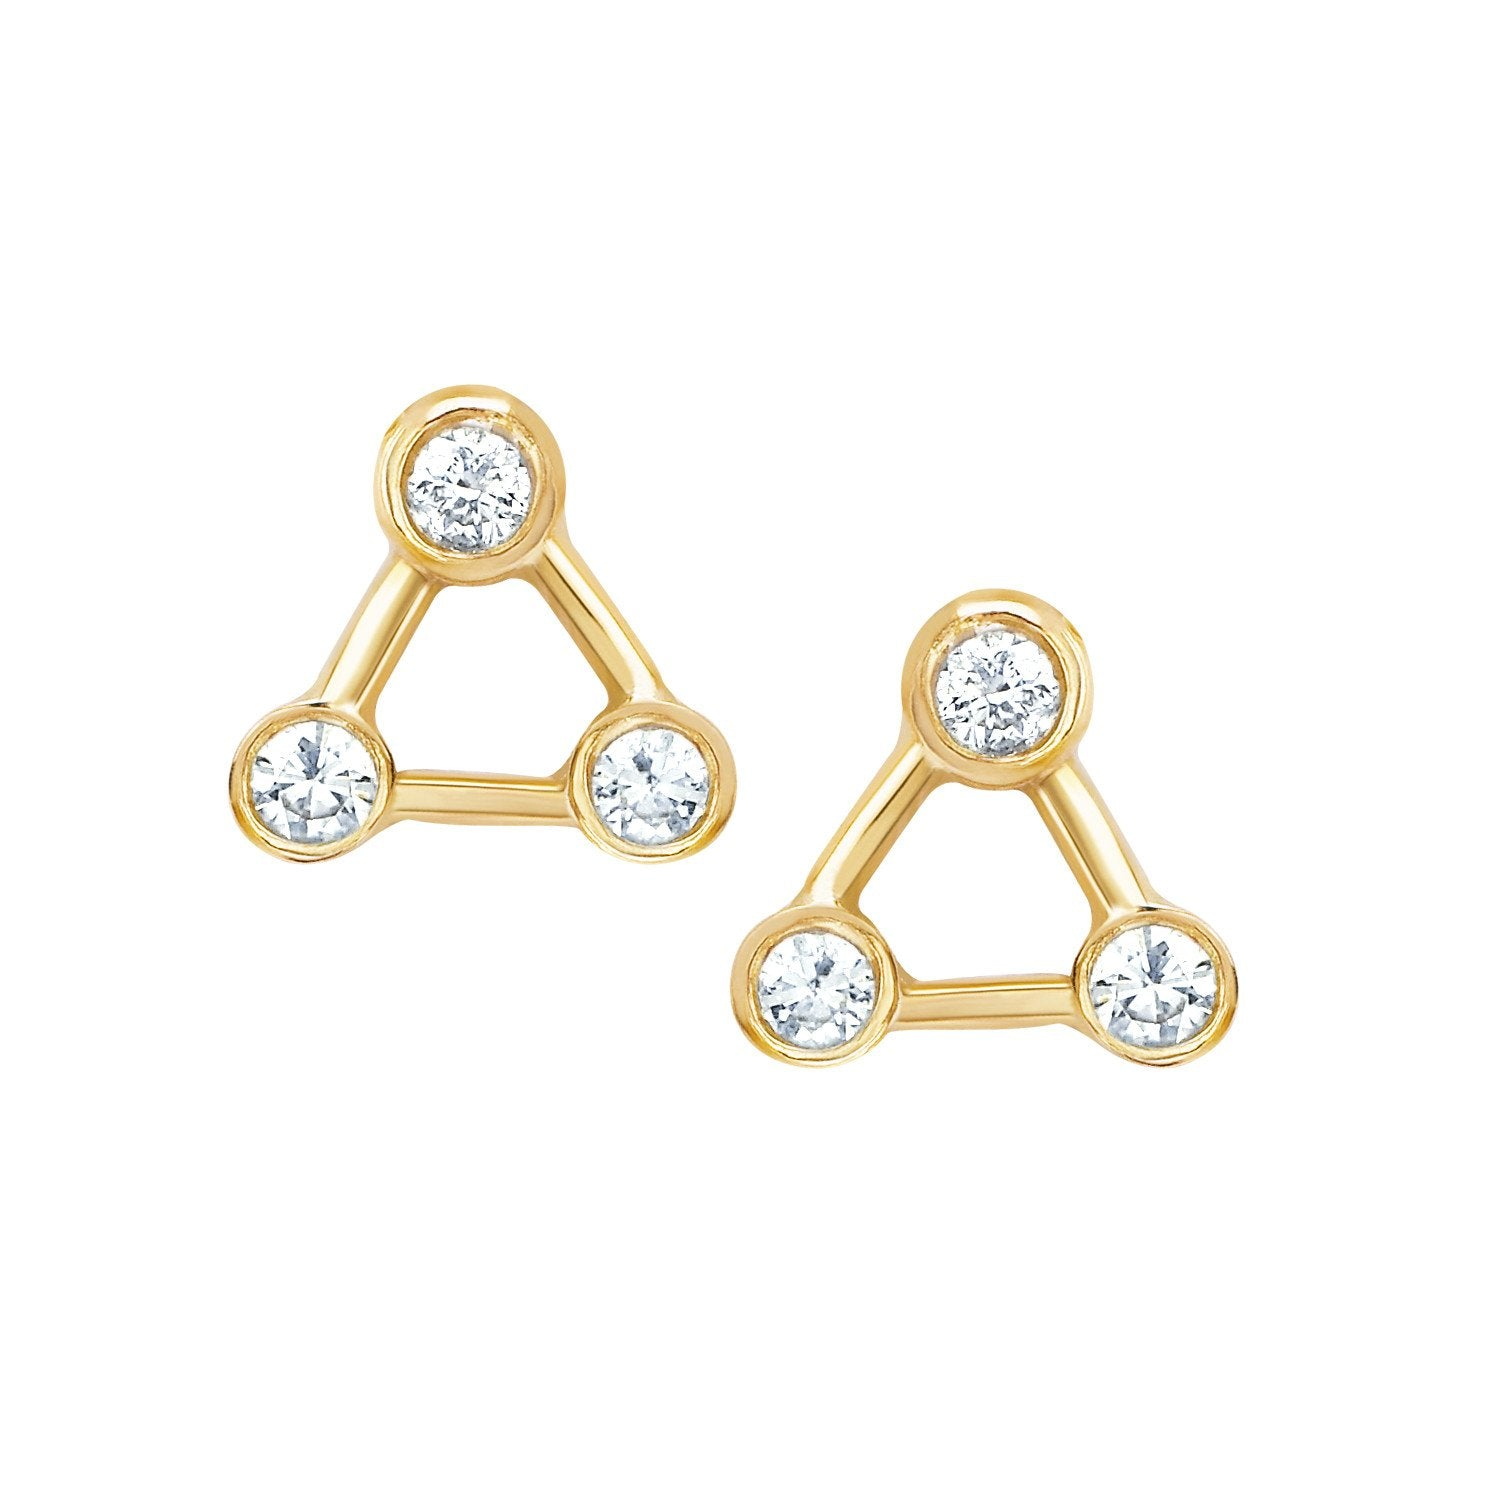 NEW! Mini Summer Triangle Constellation Earrings